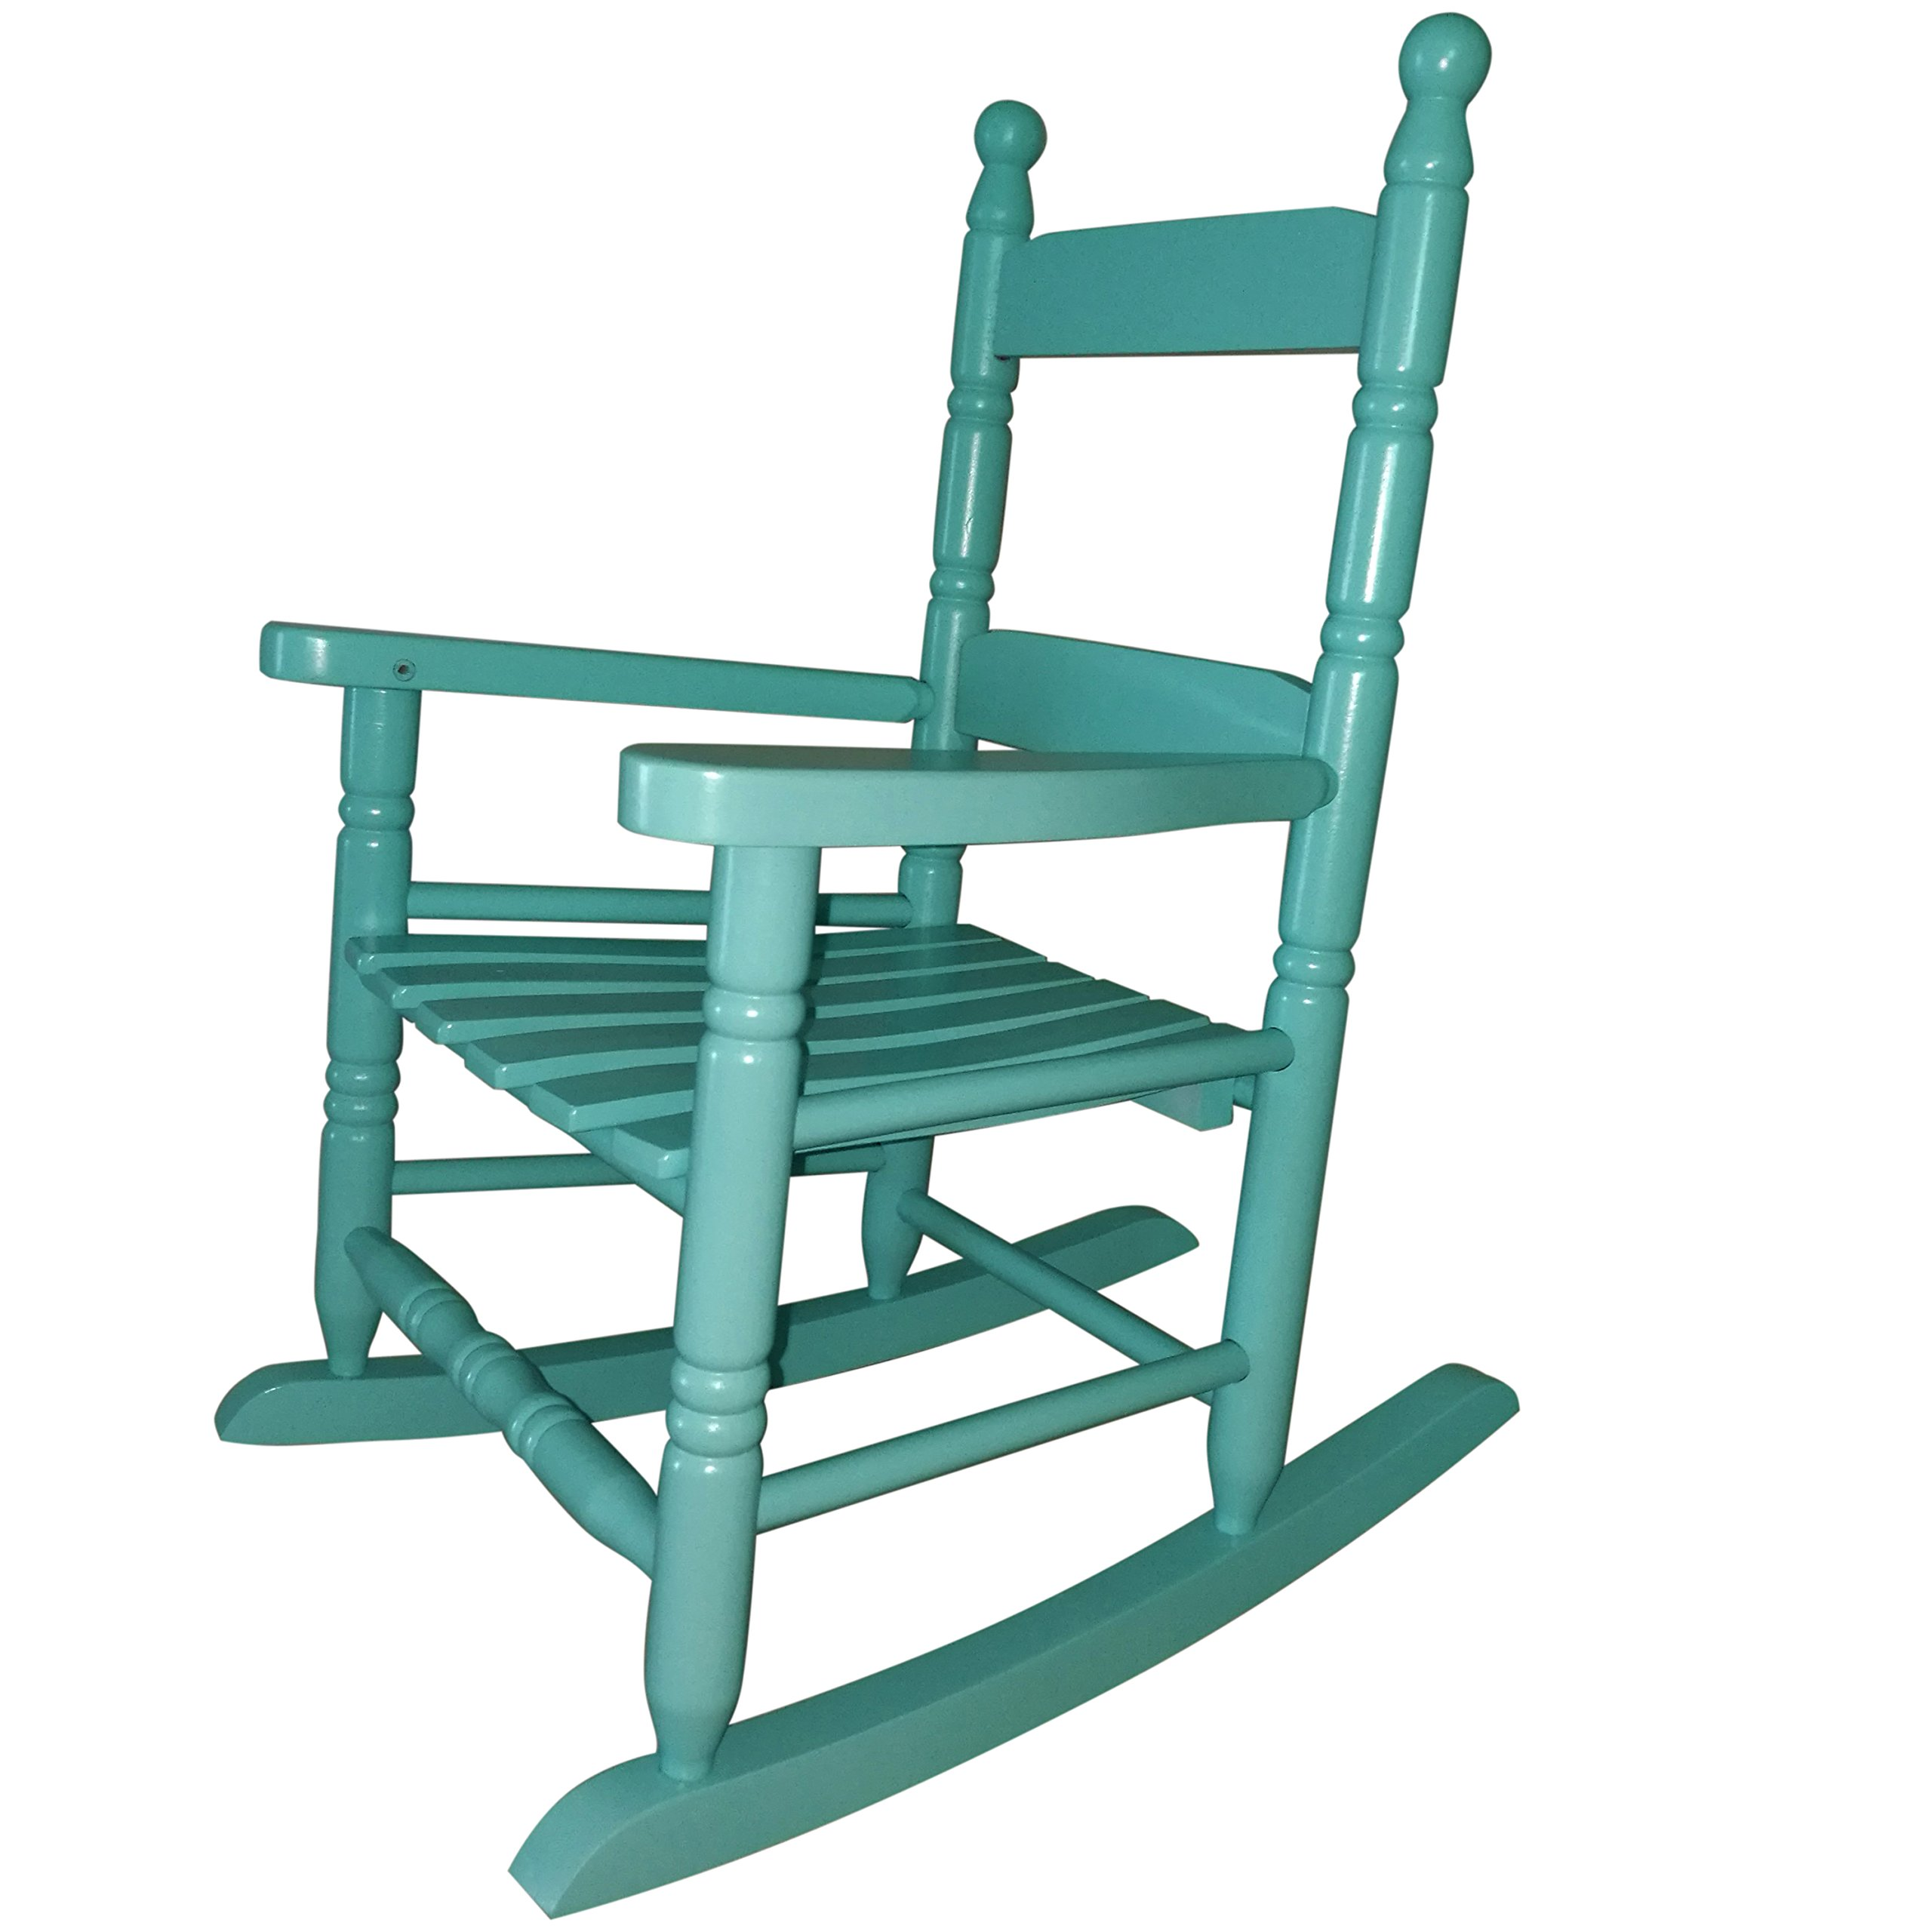 Rockingrocker - K10BU Child's Rocking Chair/porch Rocker - Indoor or Outdoor - Suitable For 1 to 4 Years Old (Light Blue)